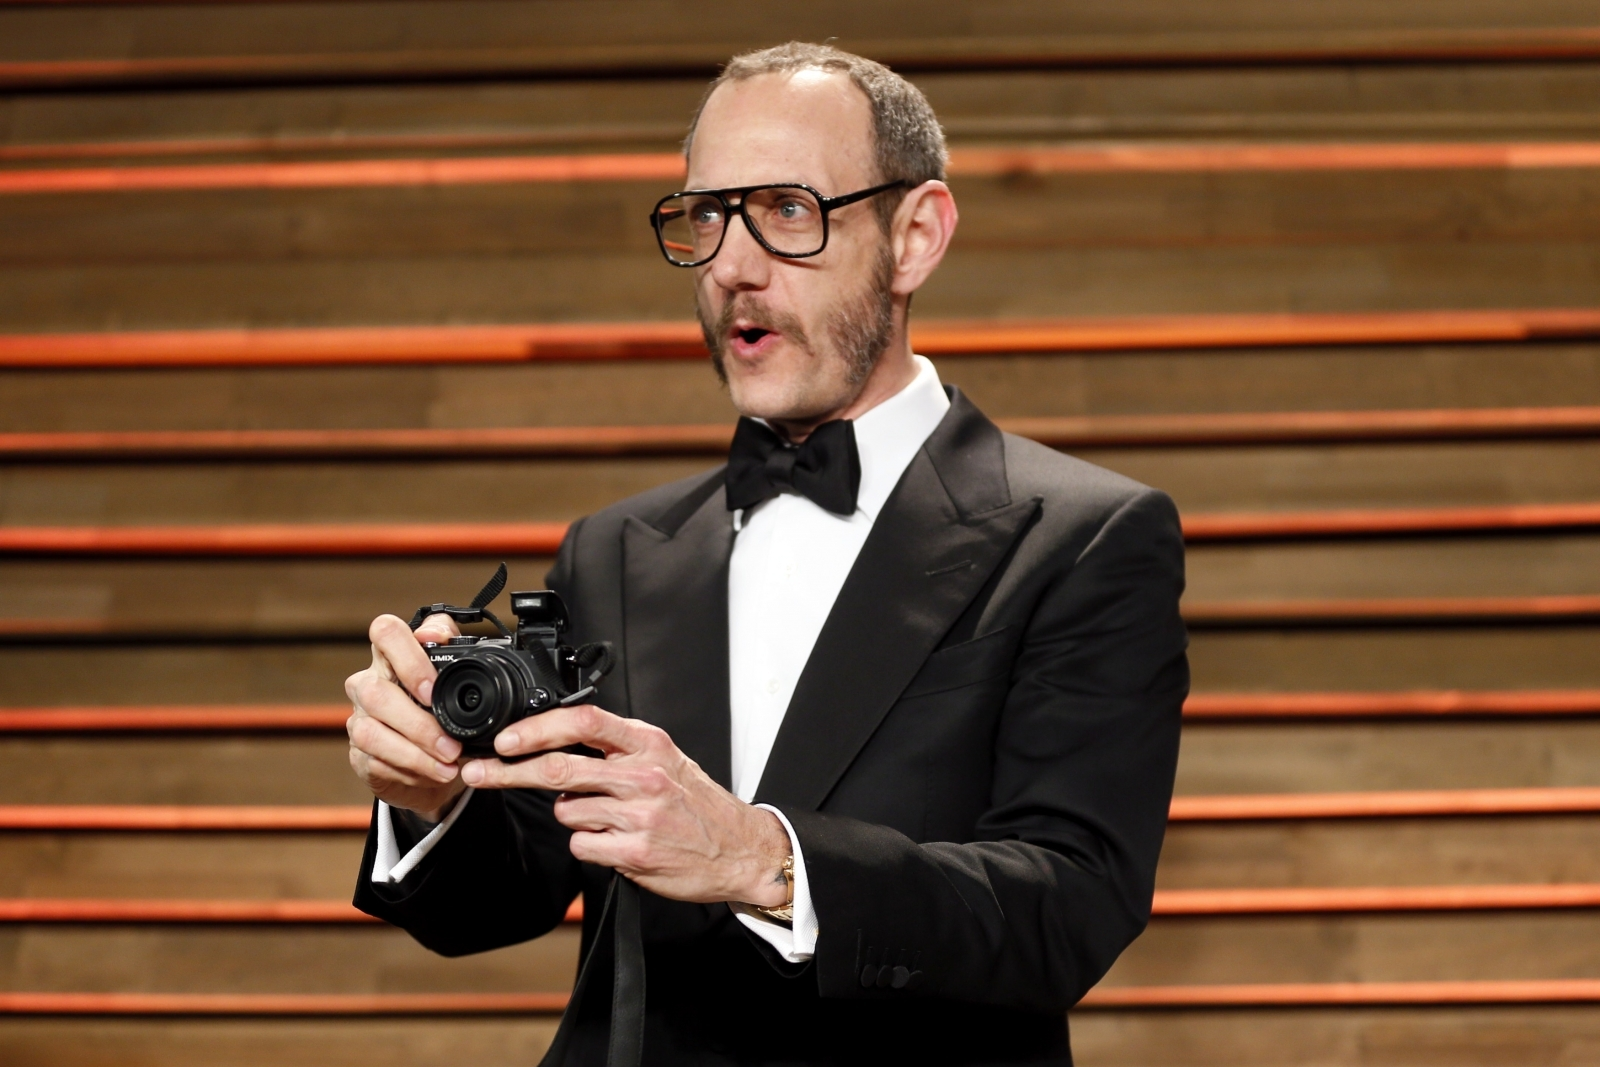 Terry Richardson Banned From Working With The World's Most Iconic Magazines